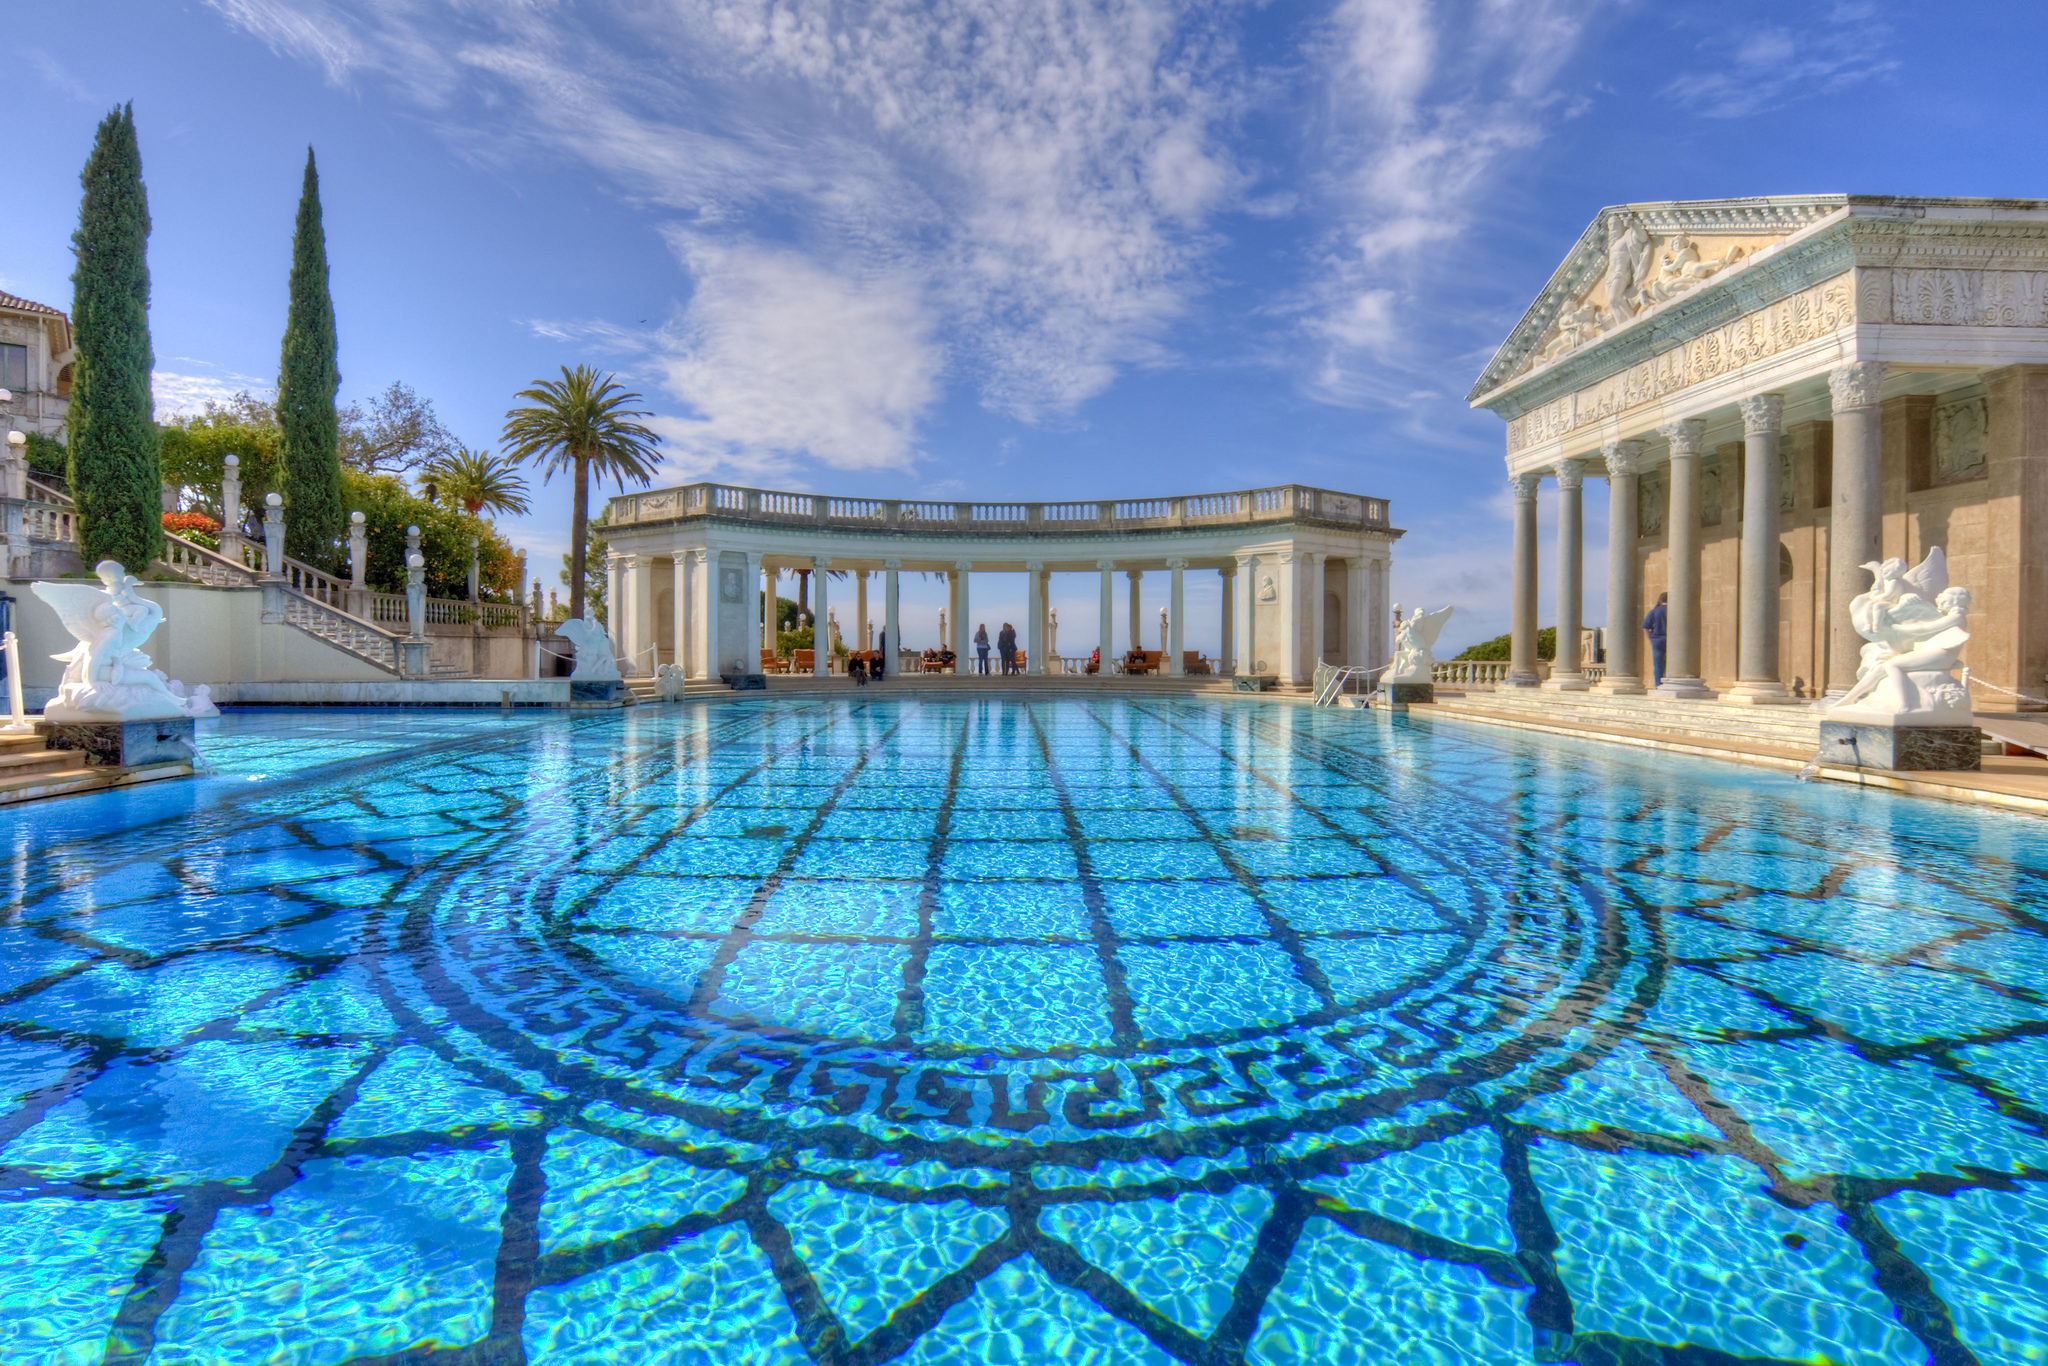 Neptune Pool - Hearst Castle | foto: Michael de la Paz (Flickr)